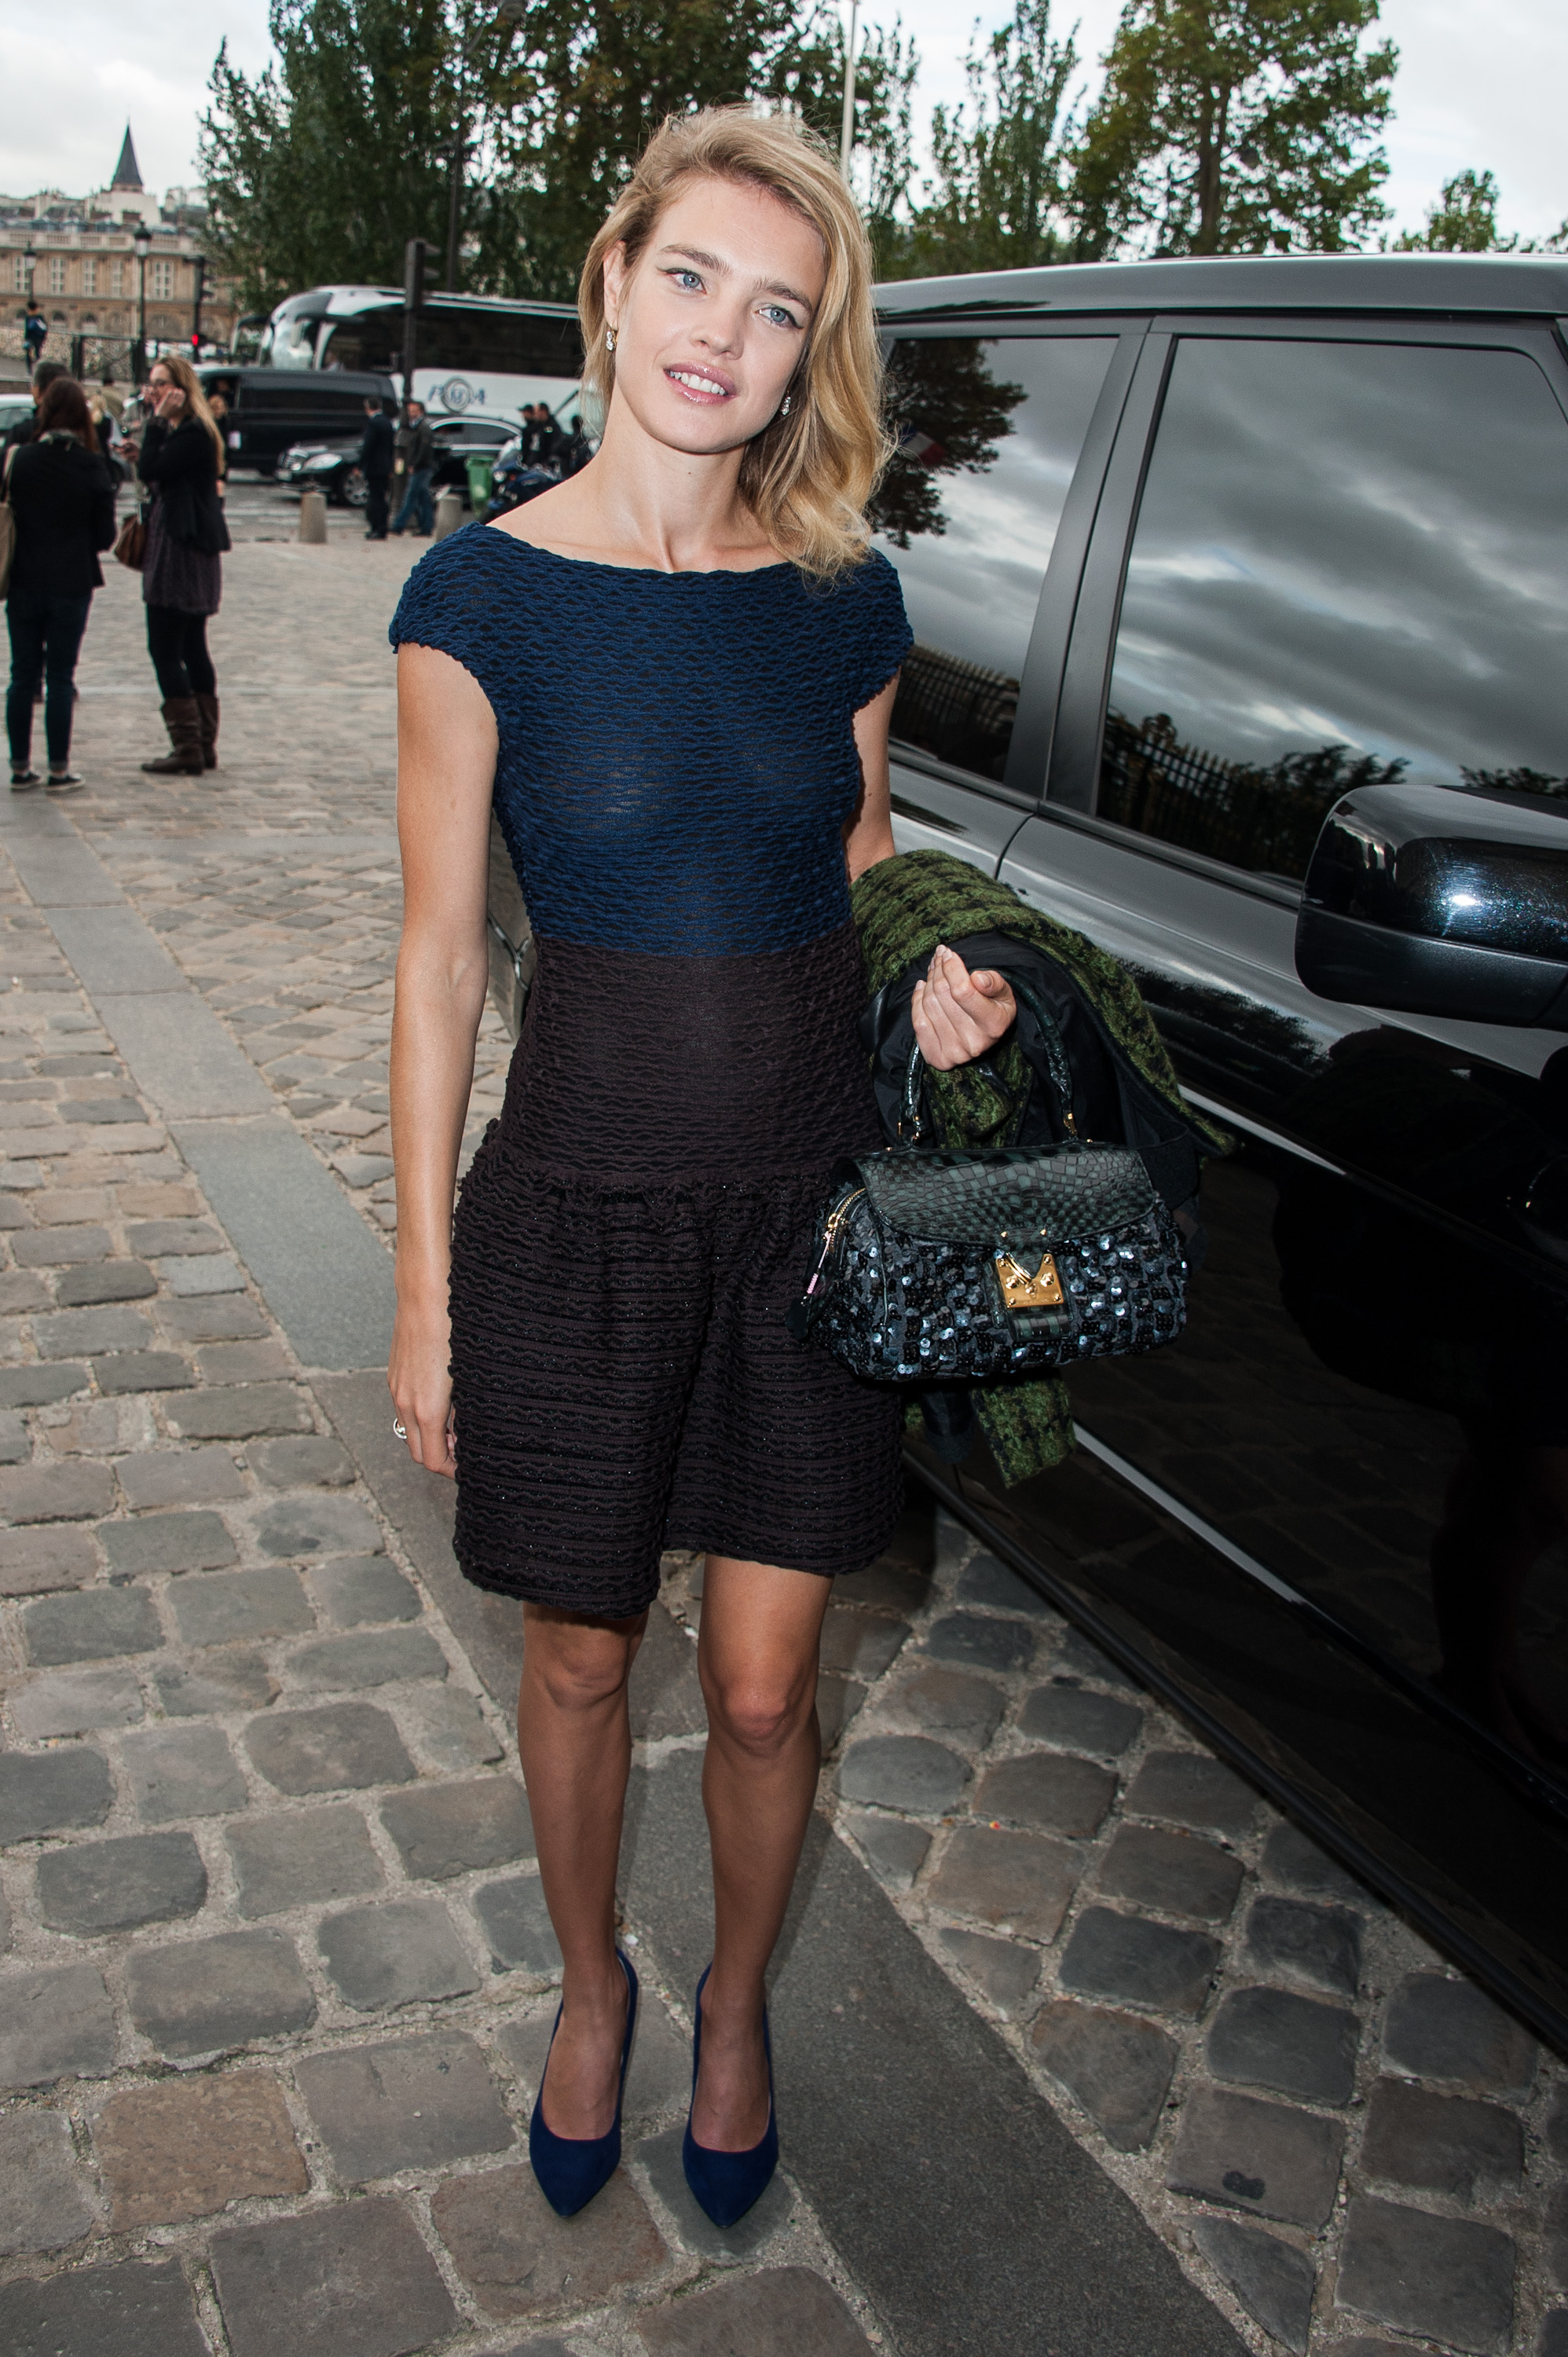 Natalia Vodianova went with a ruffled-hem dress in a cool two-toned palette at Louis Vuitton.